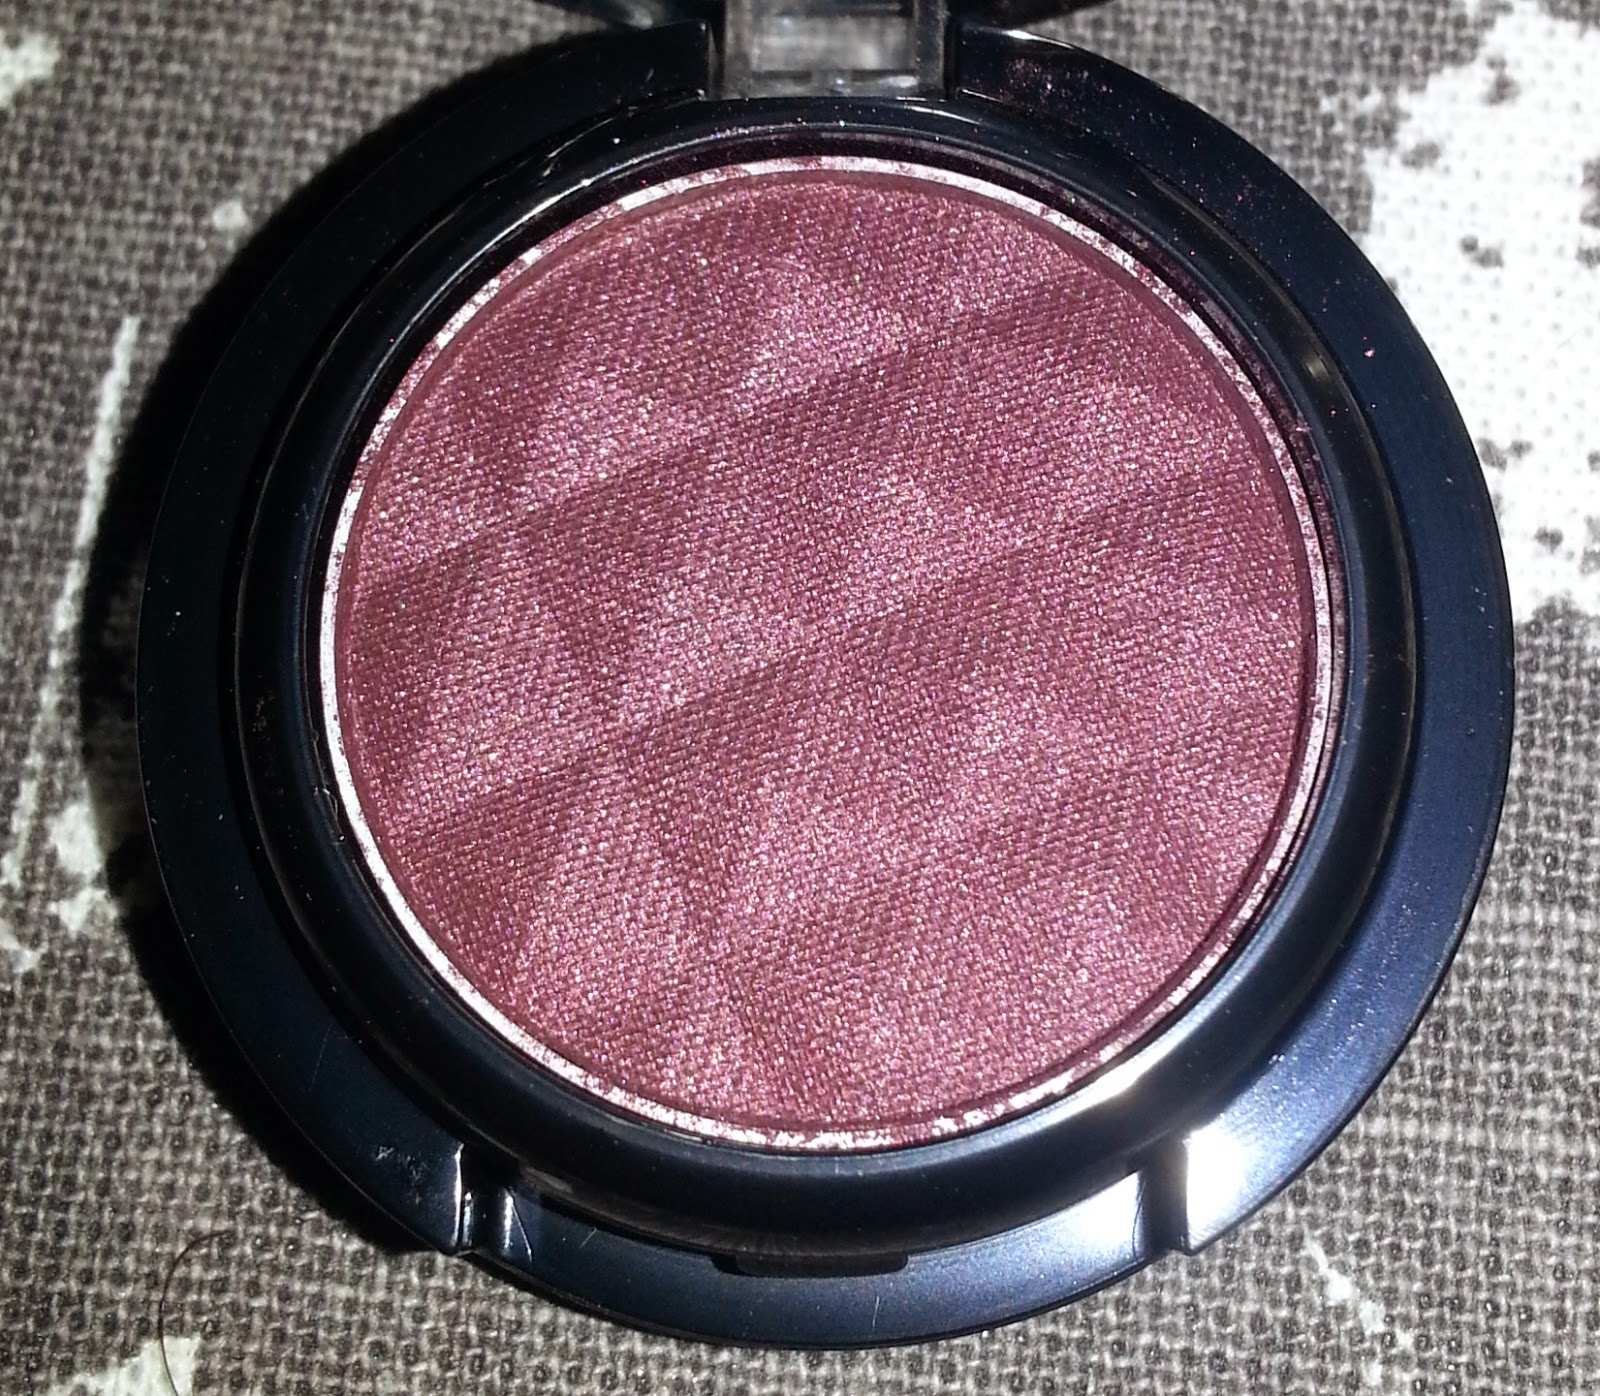 Lioele Color Eye Shadow in 15 Bordeaux Wine